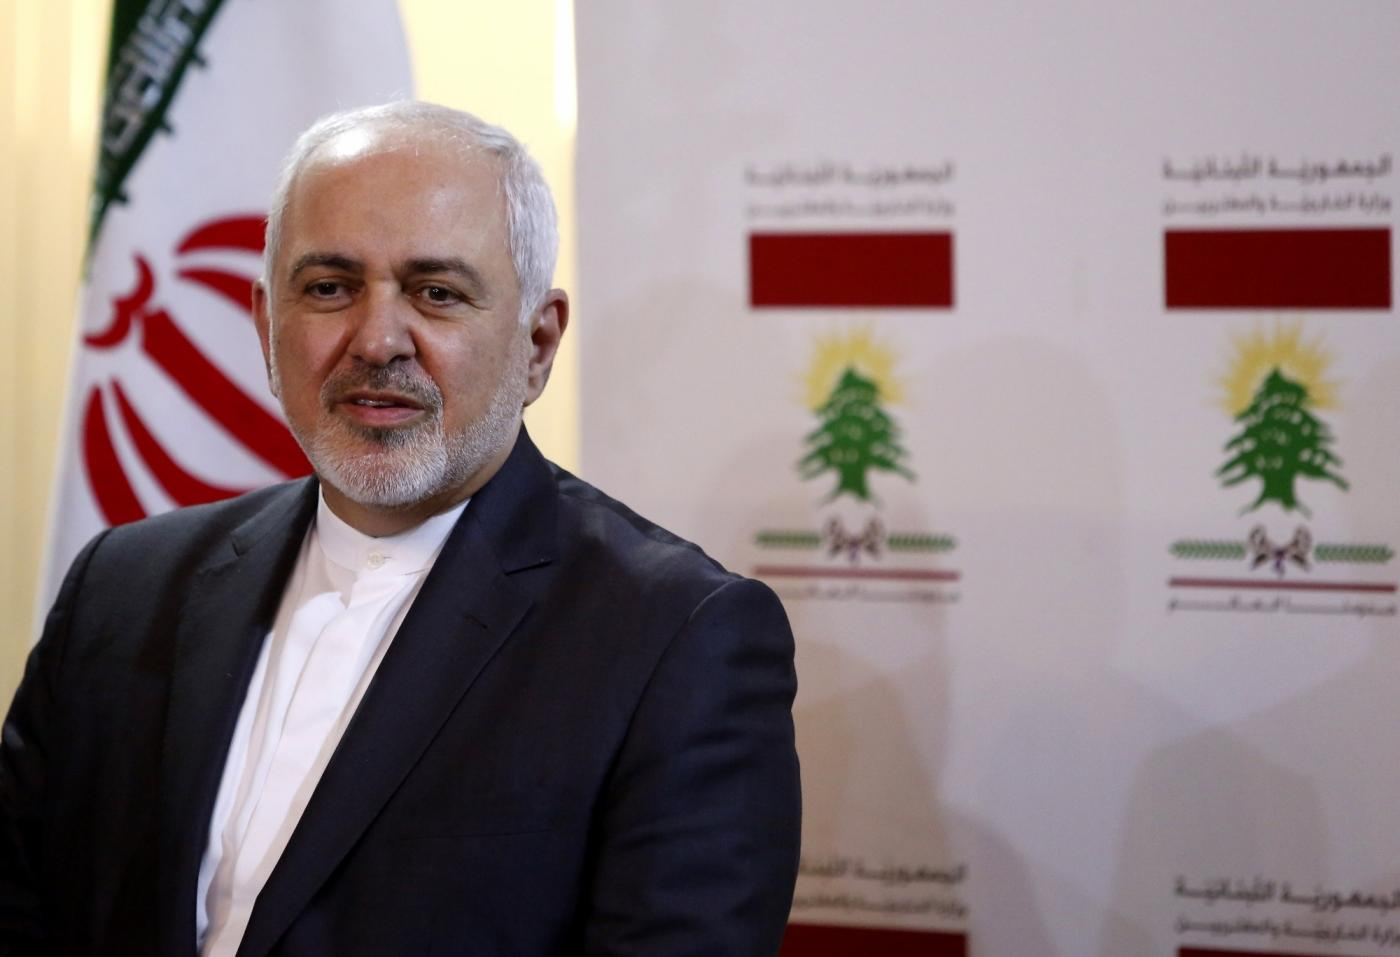 """TEHRAN, Feb. 26, 2019 (Xinhua) -- Photo taken on Feb. 11, 2019 shows Iranian Foreign Minister Mohammad Javad Zarif attending a press conference in Beirut, Lebanon. Mohammad Javad Zarif seemed to have announced resignation on Feb. 25, 2018 through social media. """"Thanks for the great and brave Iranians and my colleagues, but I apologize for my failure to serve you and some flaws in my work,"""" Zarif said on his Instagram account. (Xinhua/Bilal Jawich/IANS) by ."""